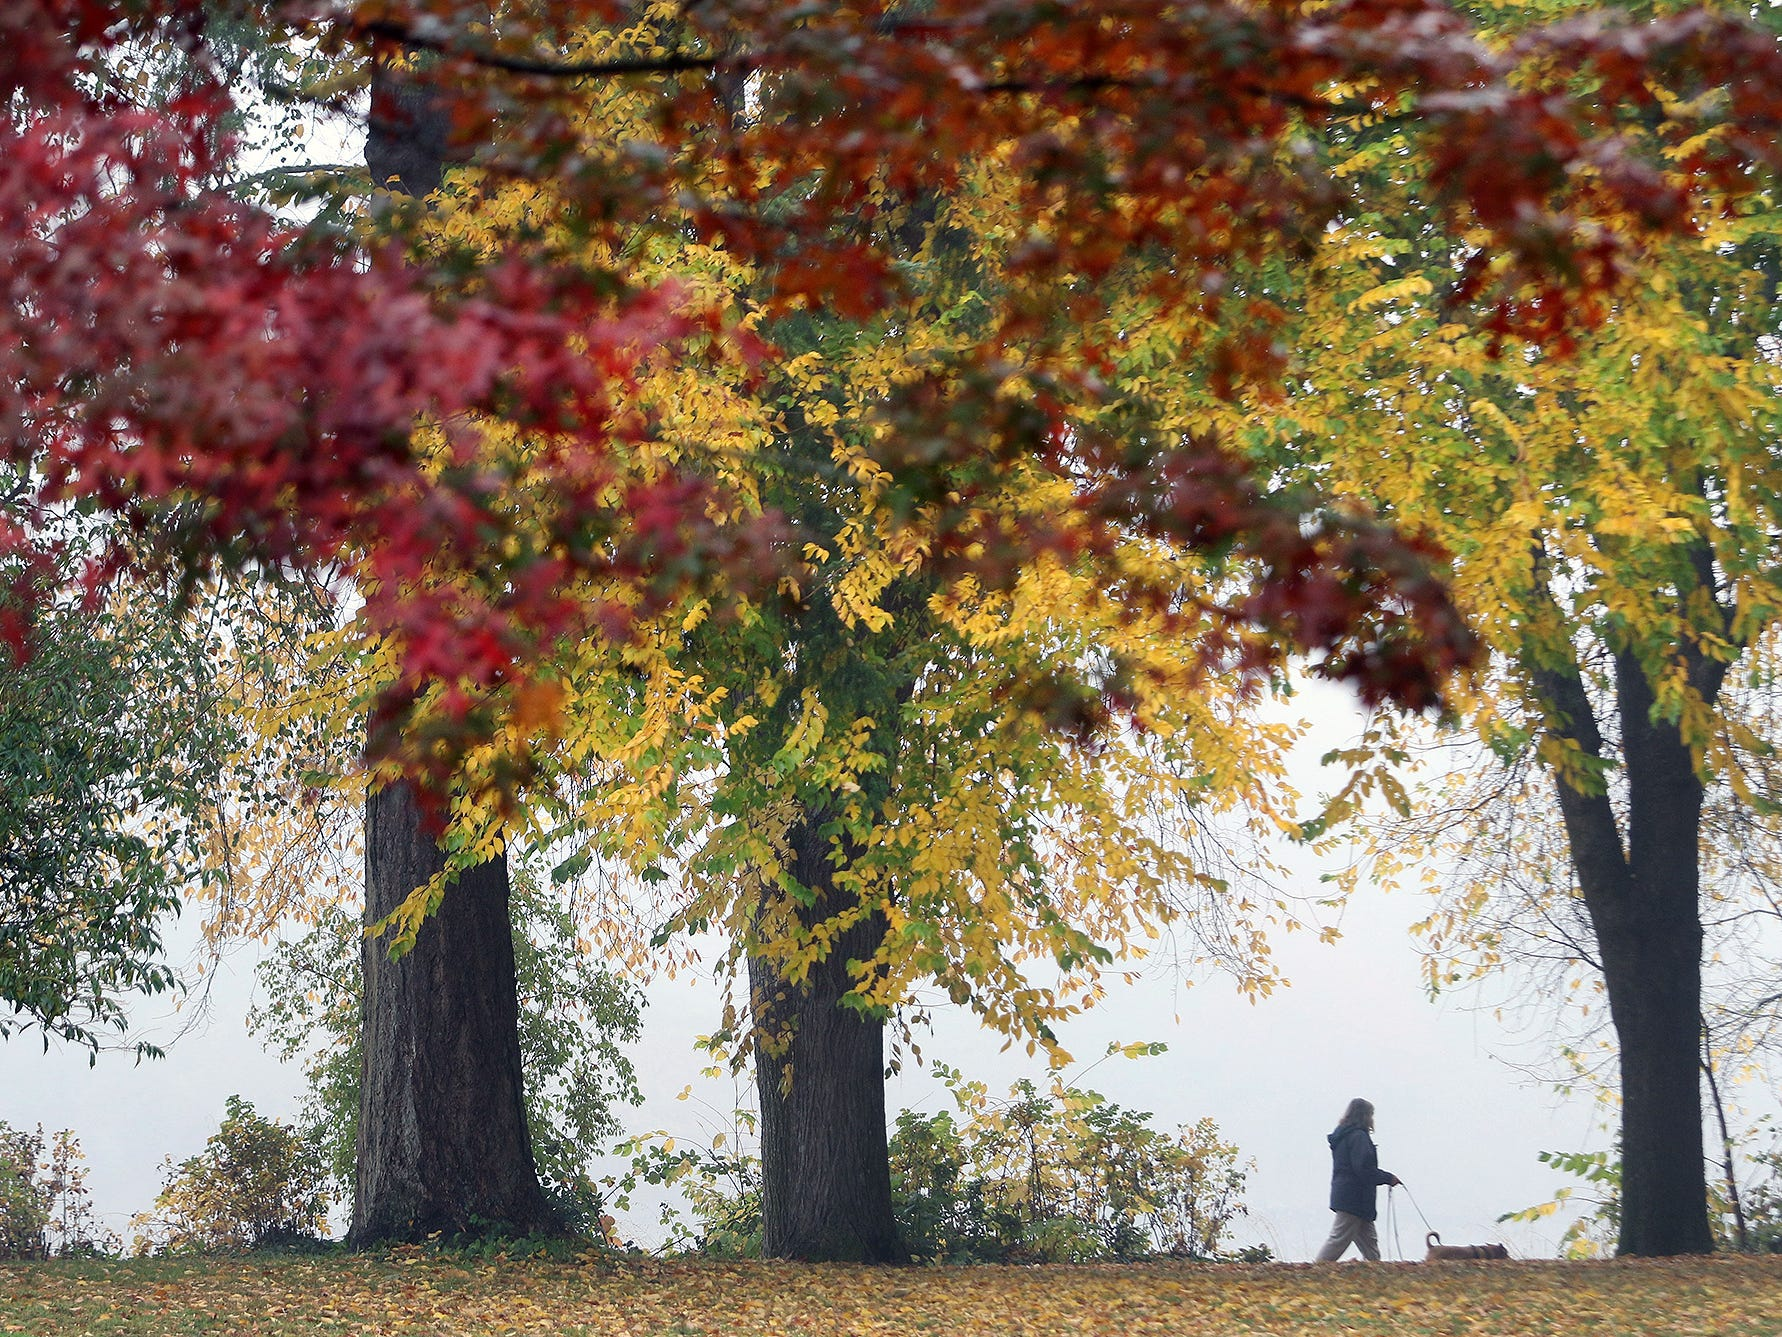 Vaughne Sprowls walks her dog Marty in on a foggy morning at Evergreen-Rotary Park in Bremerton on Monday, October 22, 2018.